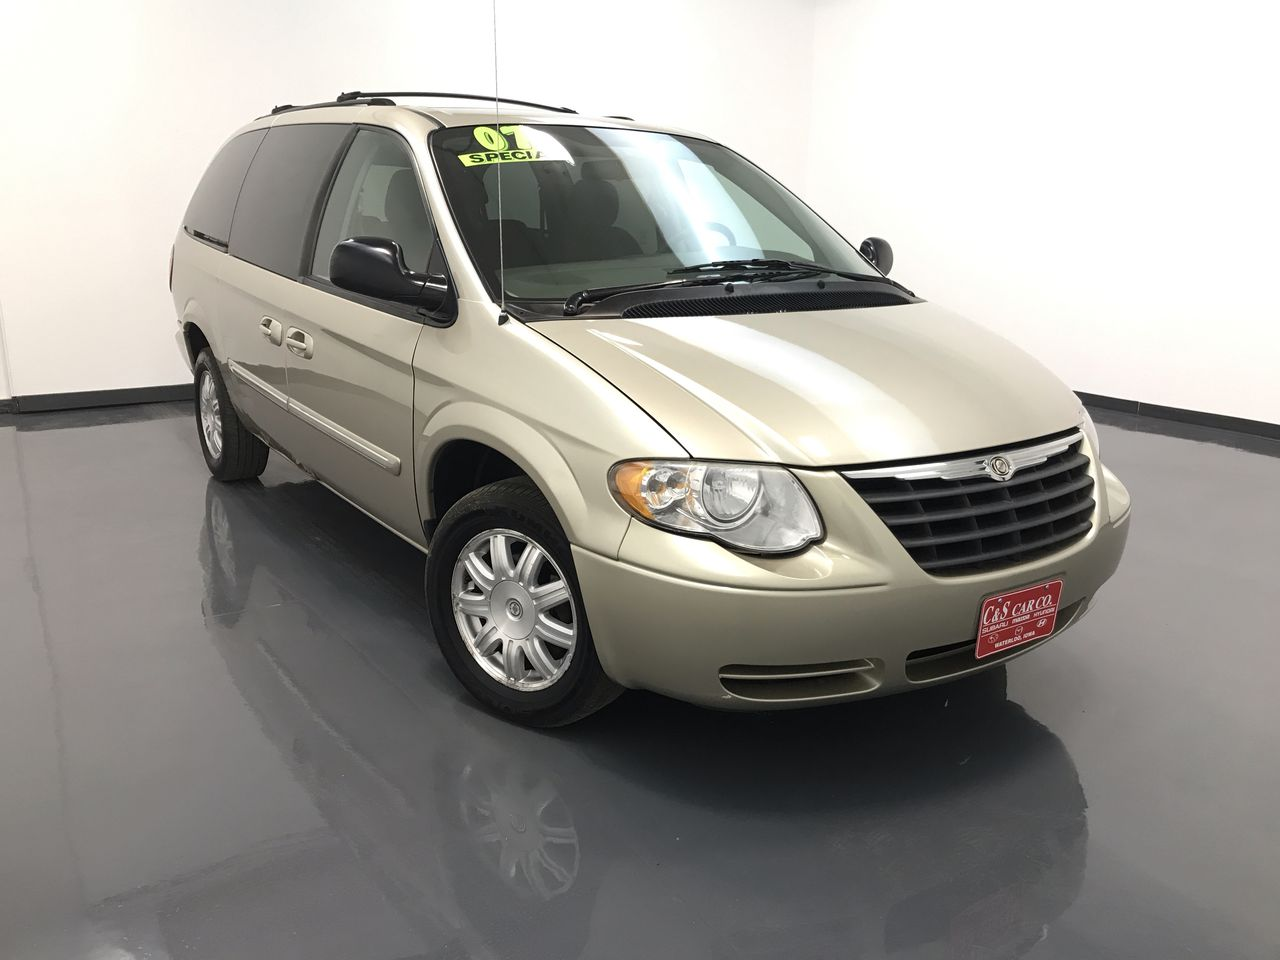 2007 Chrysler Town & Country  - C & S Car Company